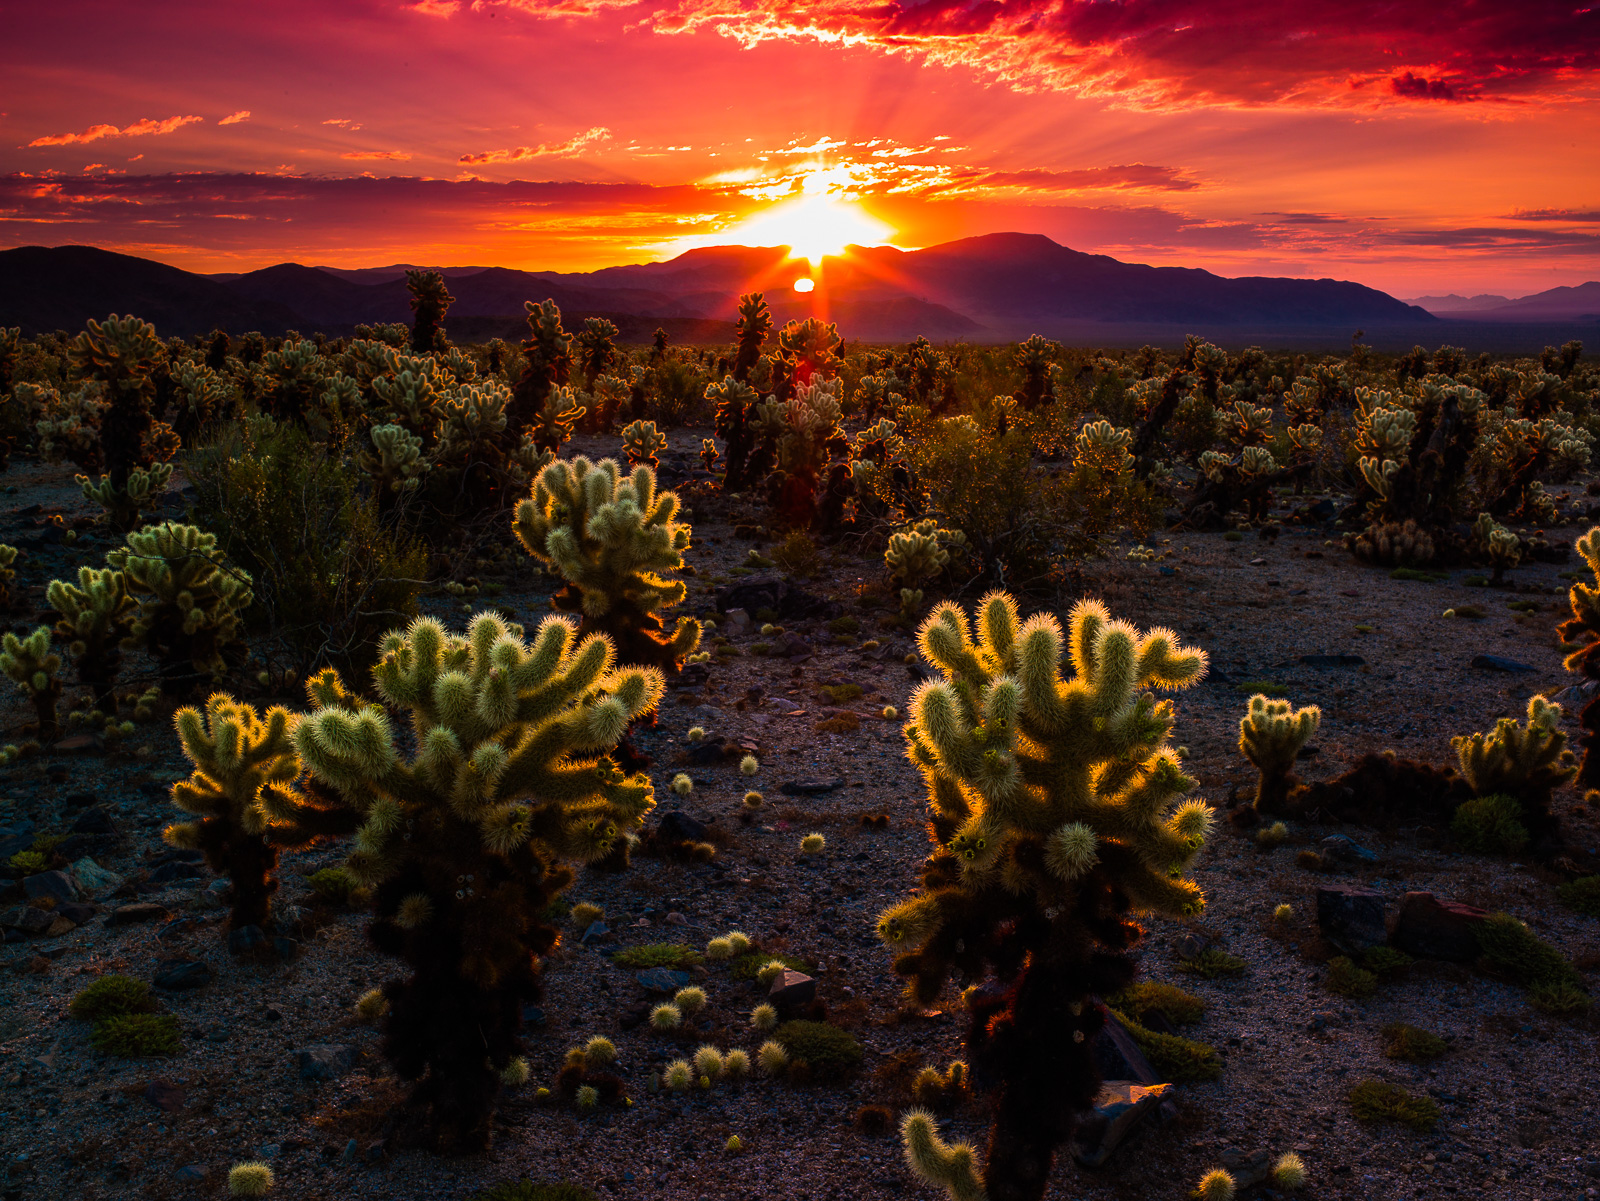 Joshua Tree Needling the Sun,California,Desert,Joshua Tree National Park,Sunrise,horizontal, photo